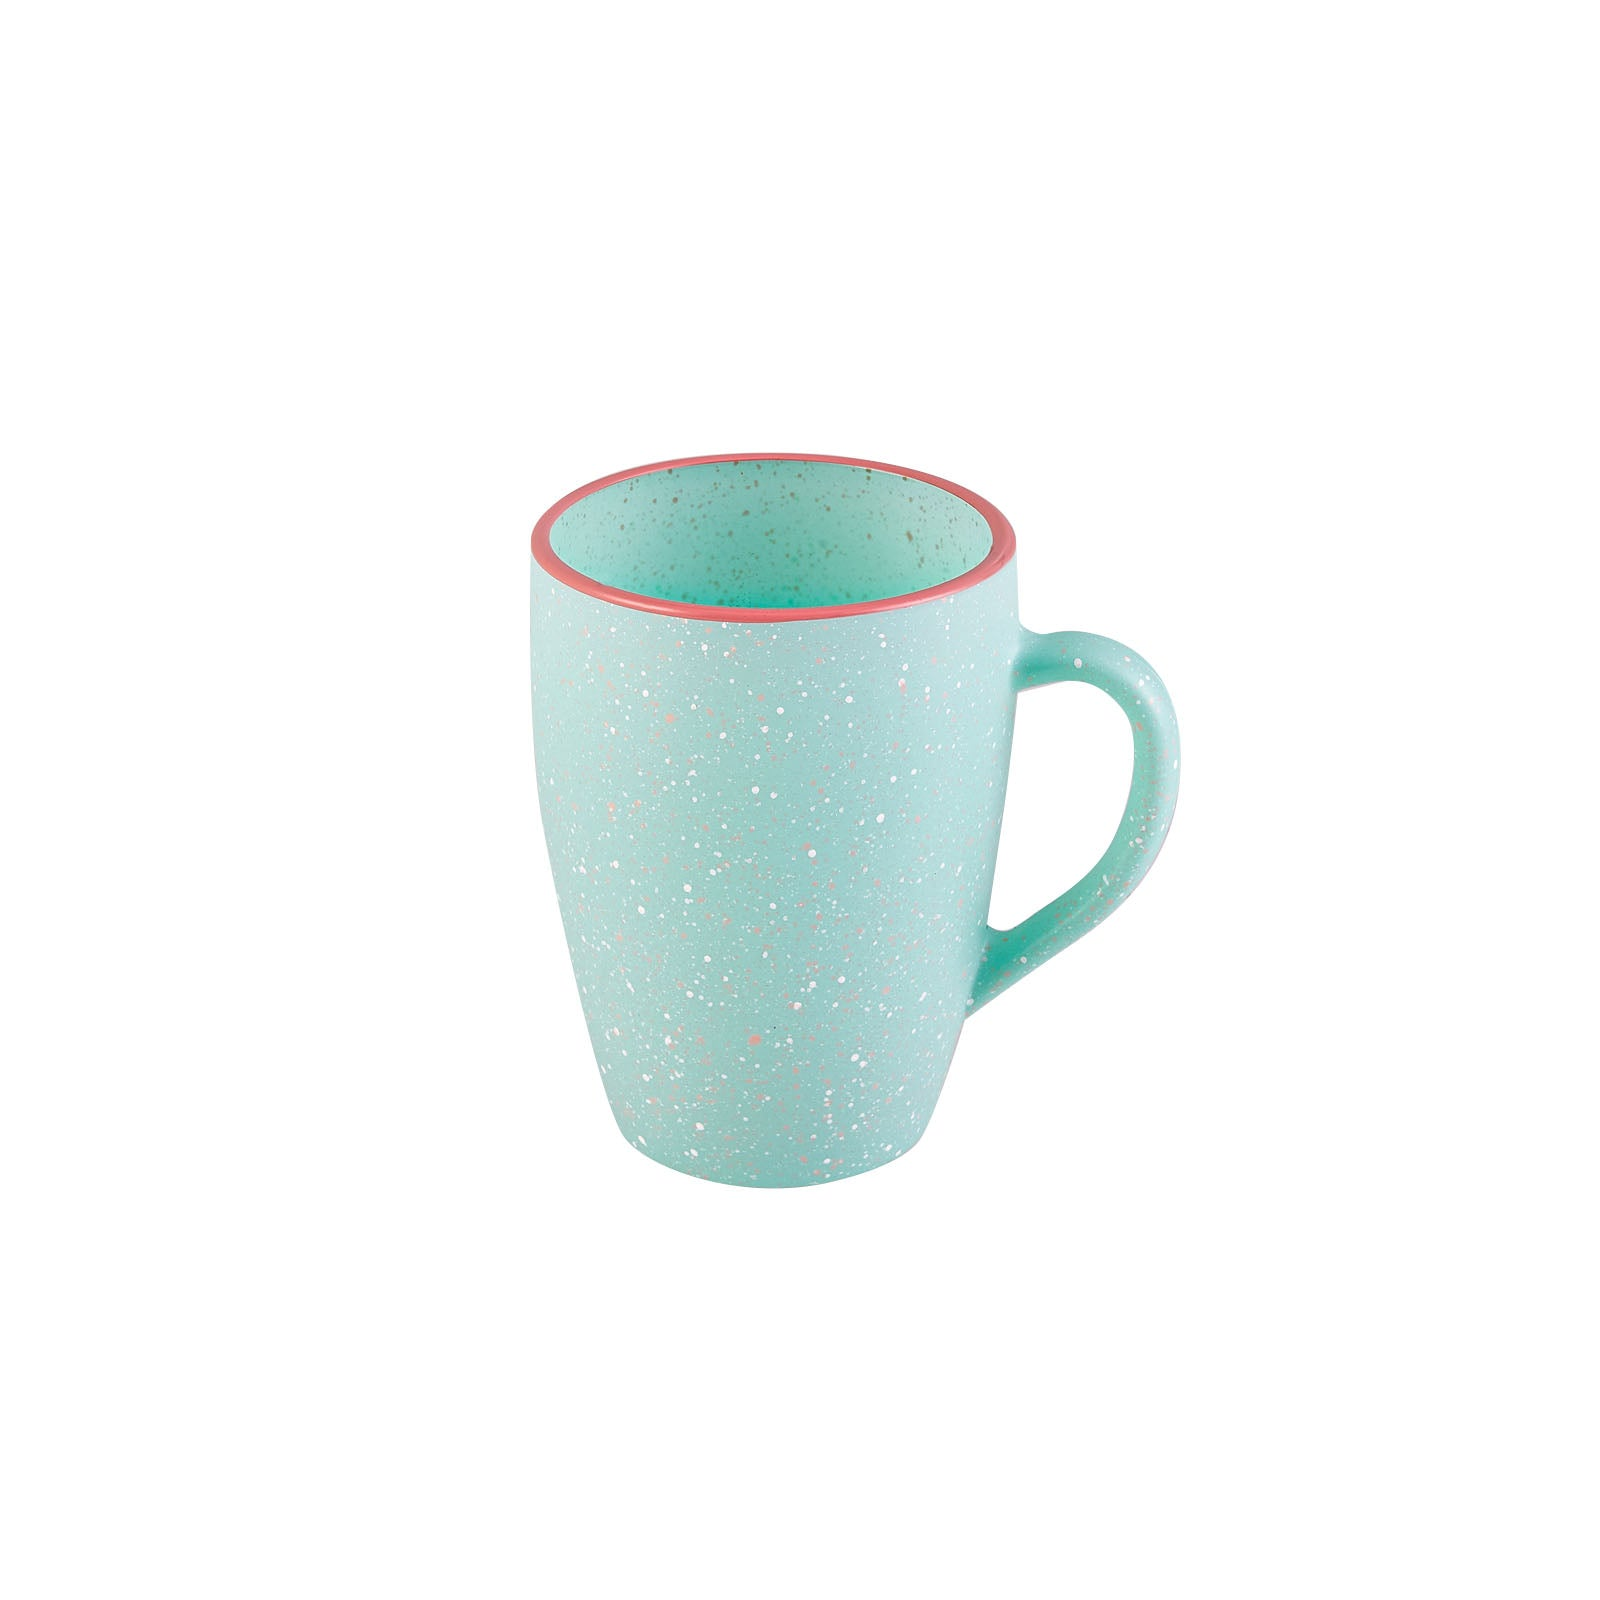 Karaca Vim GREEN Glass Mug 153.03.06.1367 - ebarza